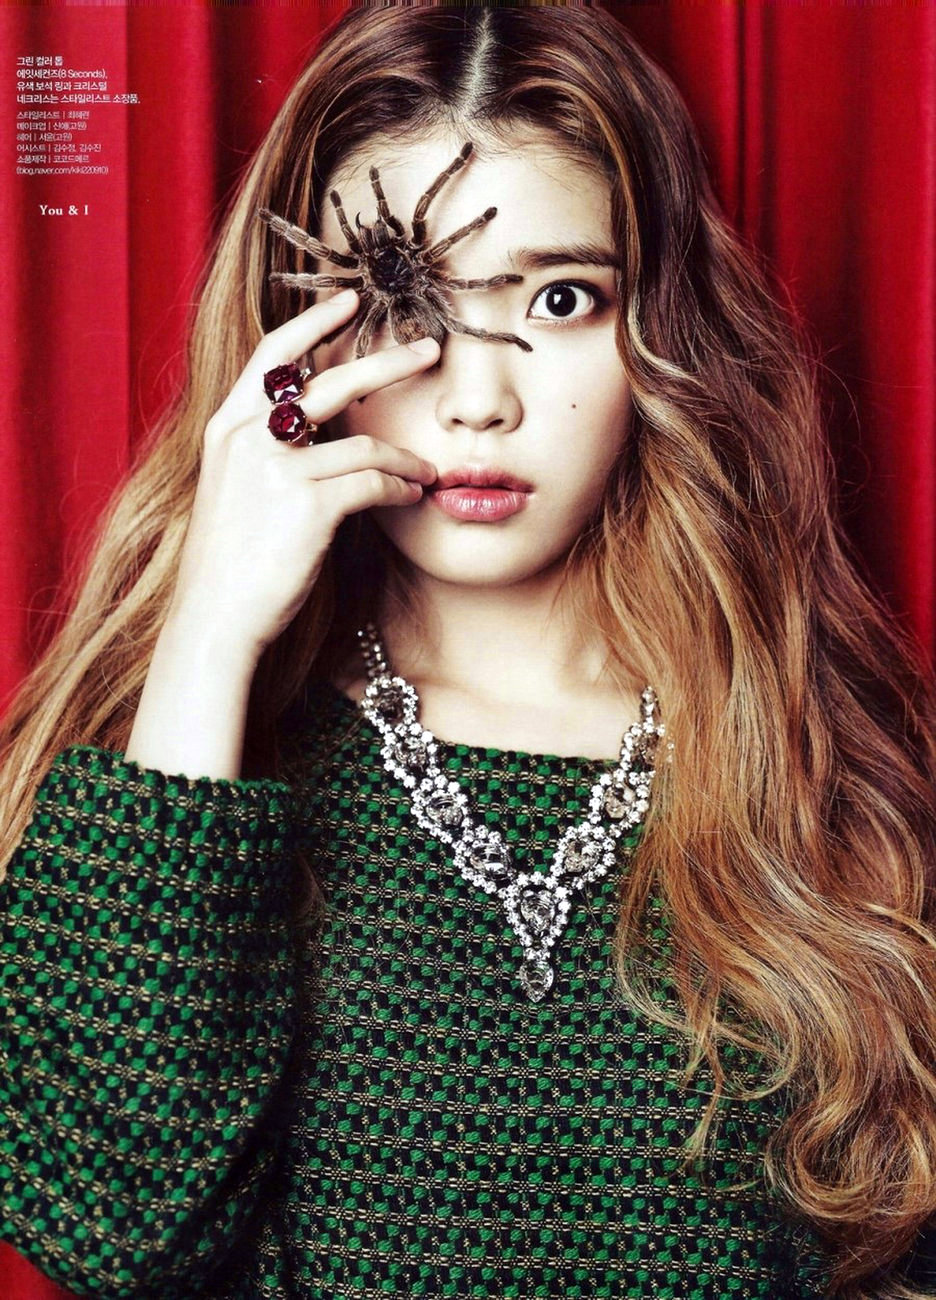 Bts In Ama >> IU for ceci Korea and Elle - OMONA THEY DIDN'T! Endless charms, endless possibilities